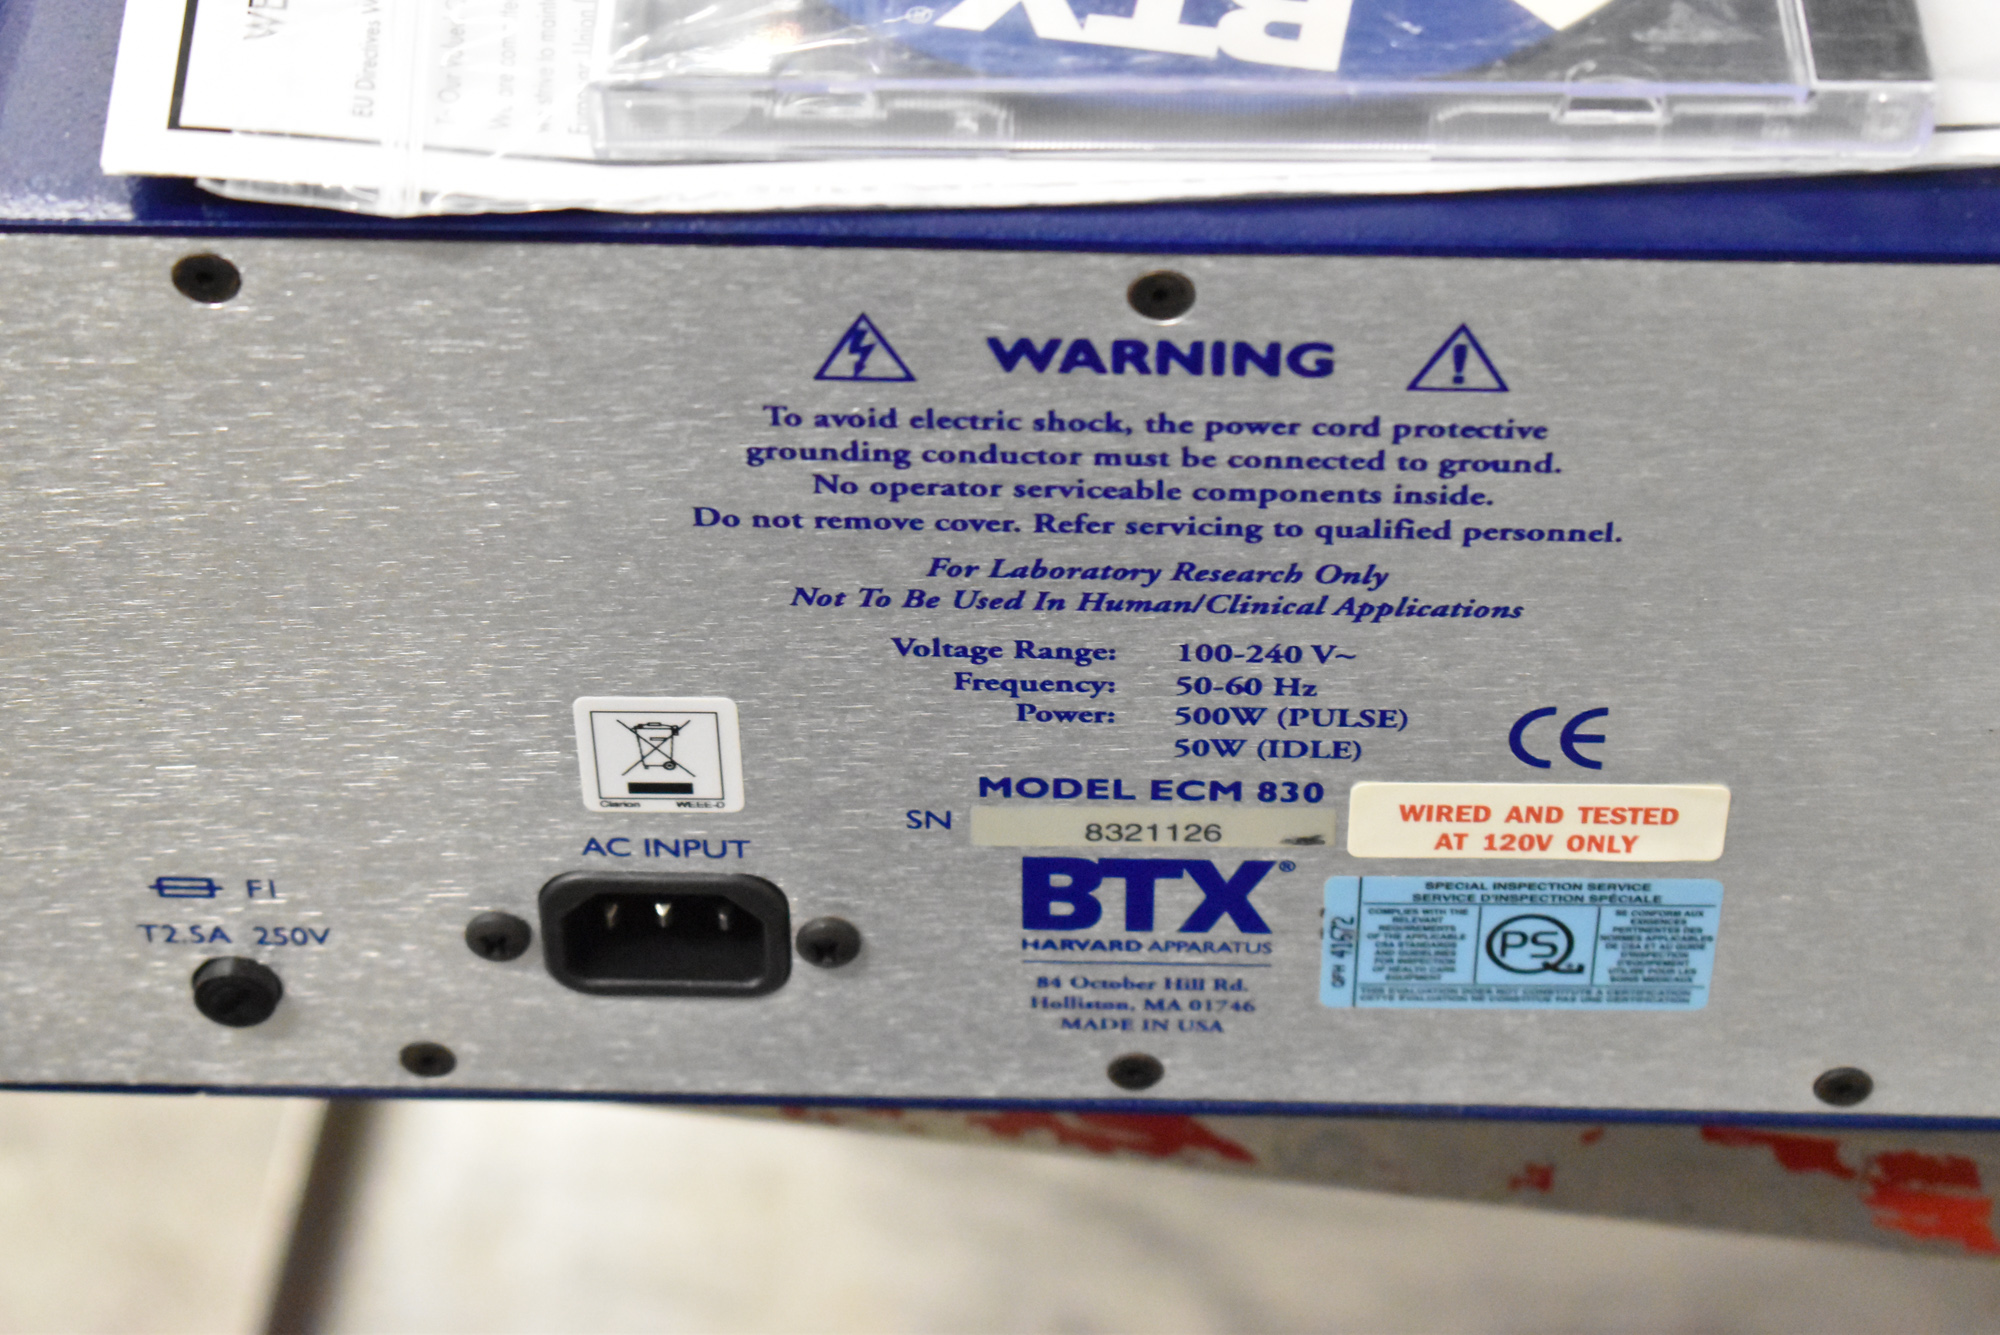 BTX ECM830 BENCH TYPE DIGITAL ELECTRO SQUARE PRORATOR, S/N N/A [$25 USD OPTIONAL LOADING FEE - - Image 4 of 4